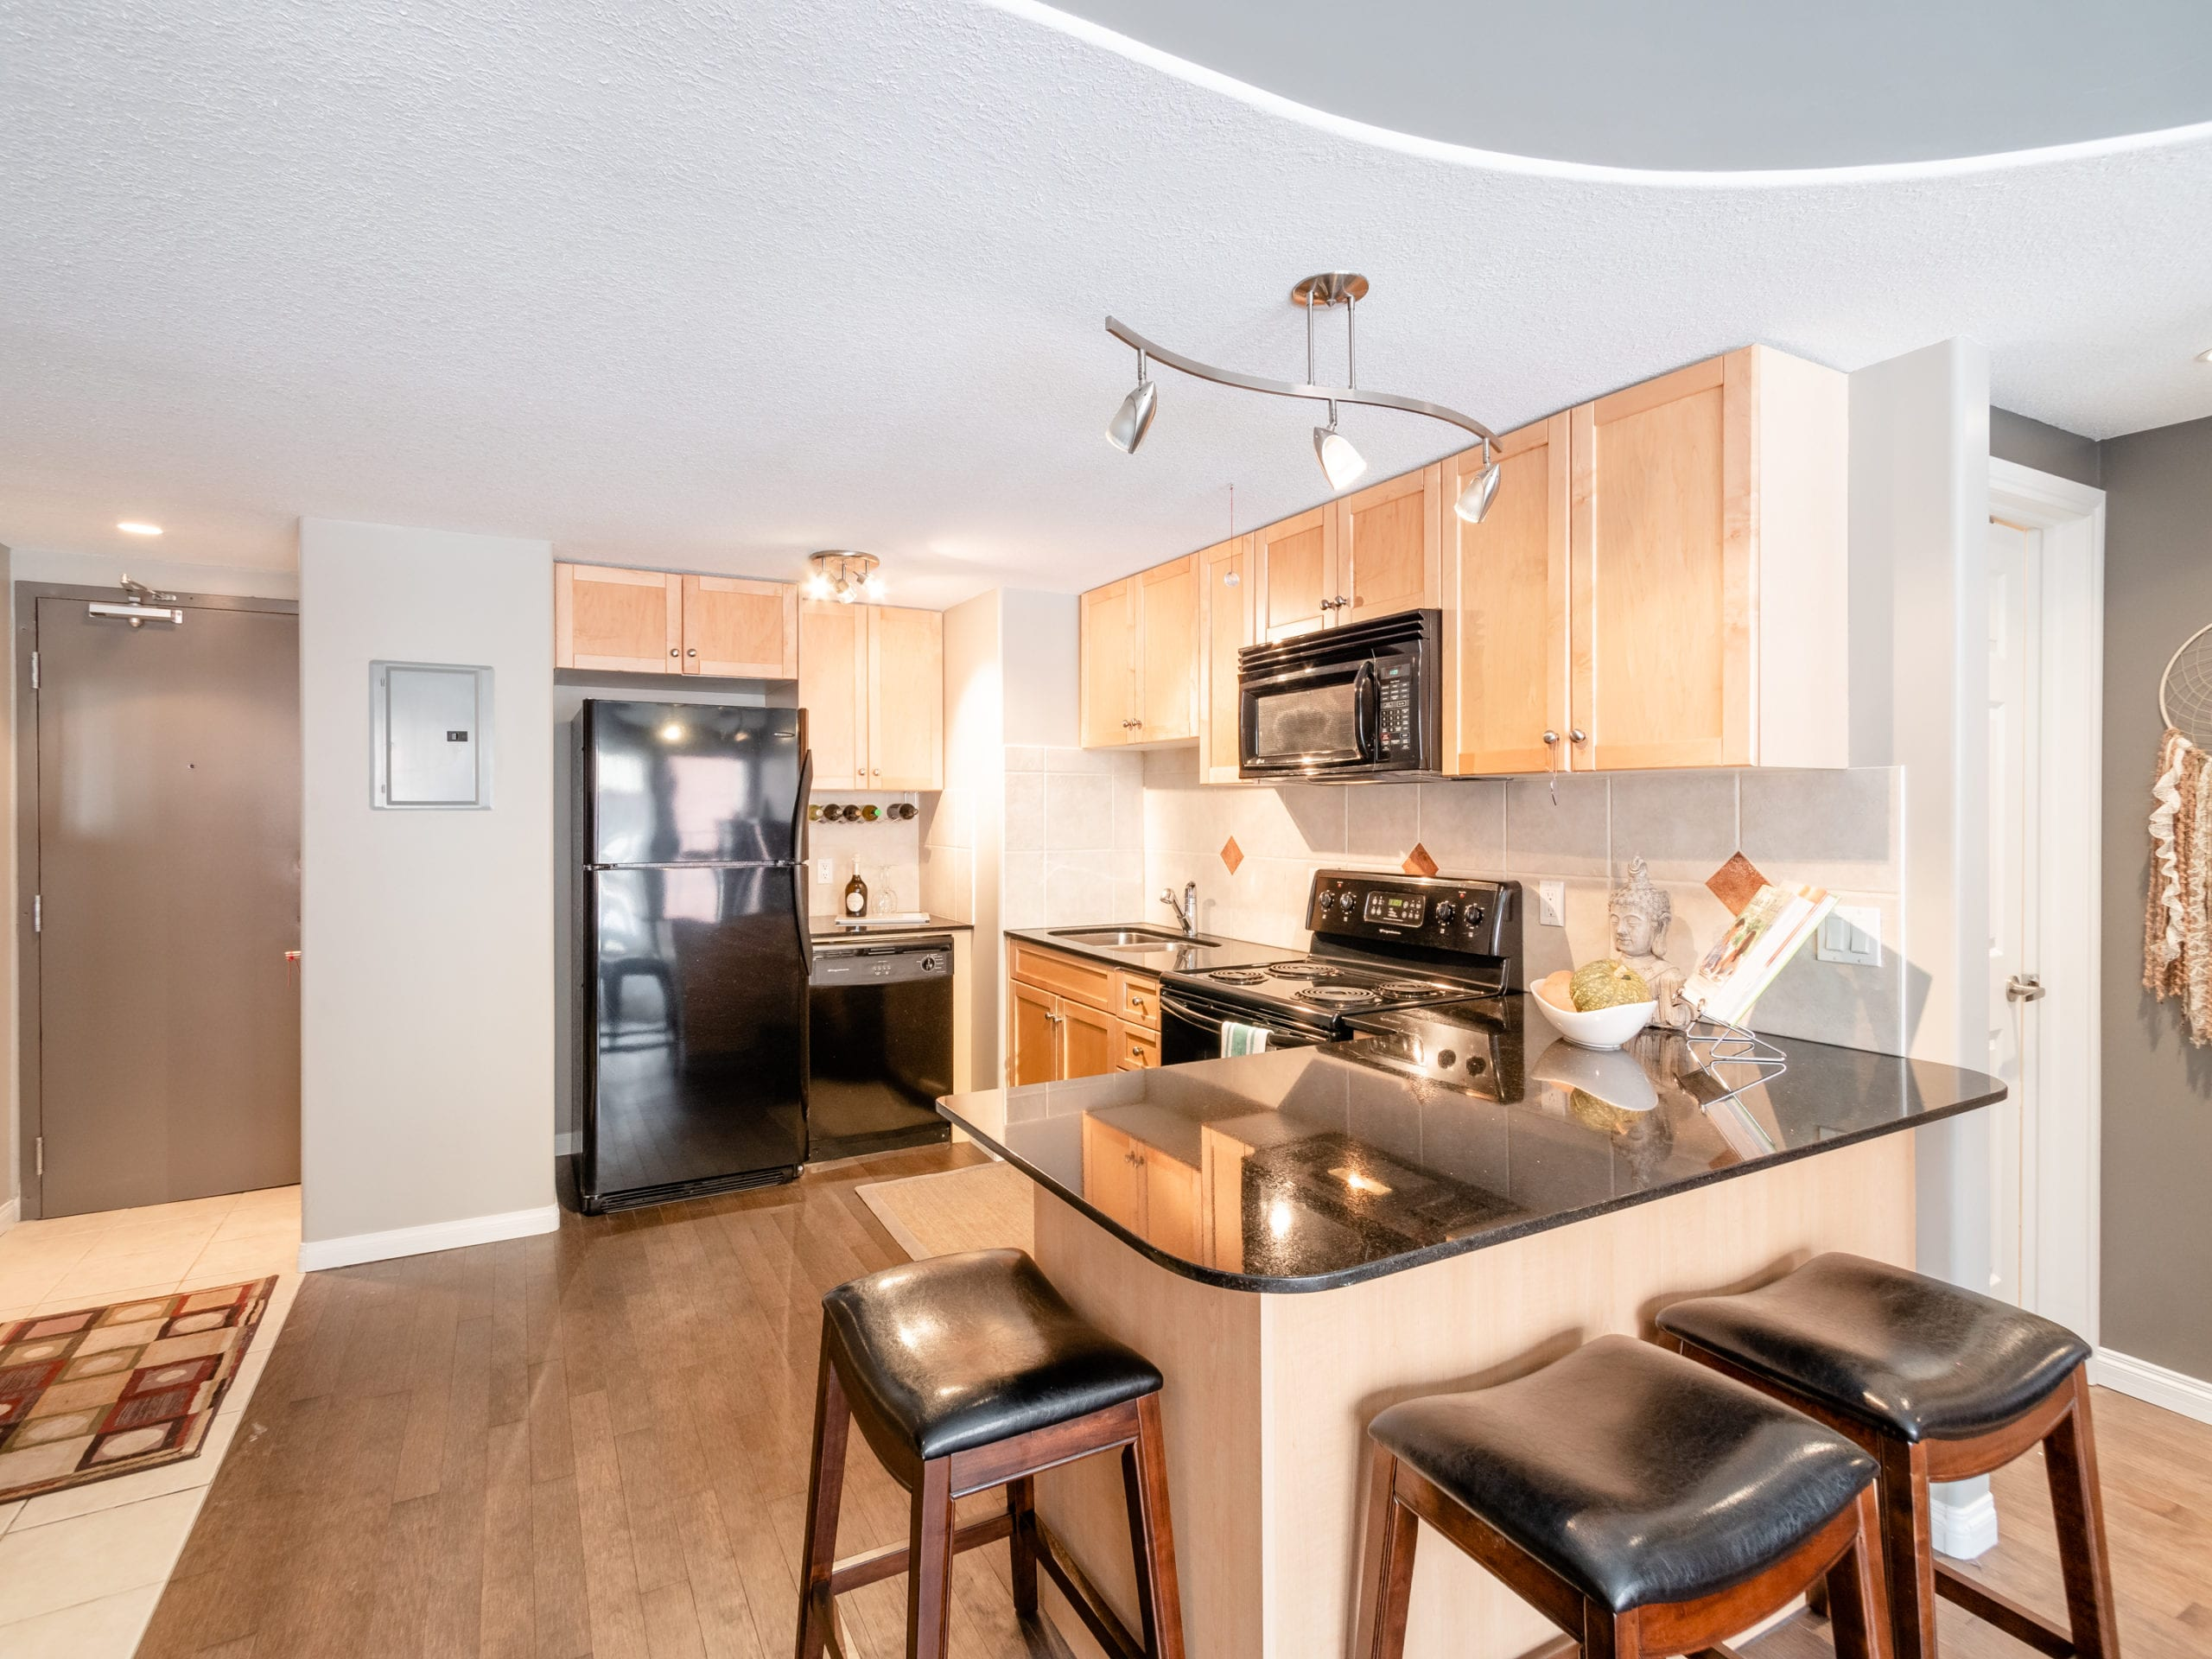 Hello Gorgeous - 207 1424 22 Ave SW Calgary - Tara Molina Real Estate (1 of 16)